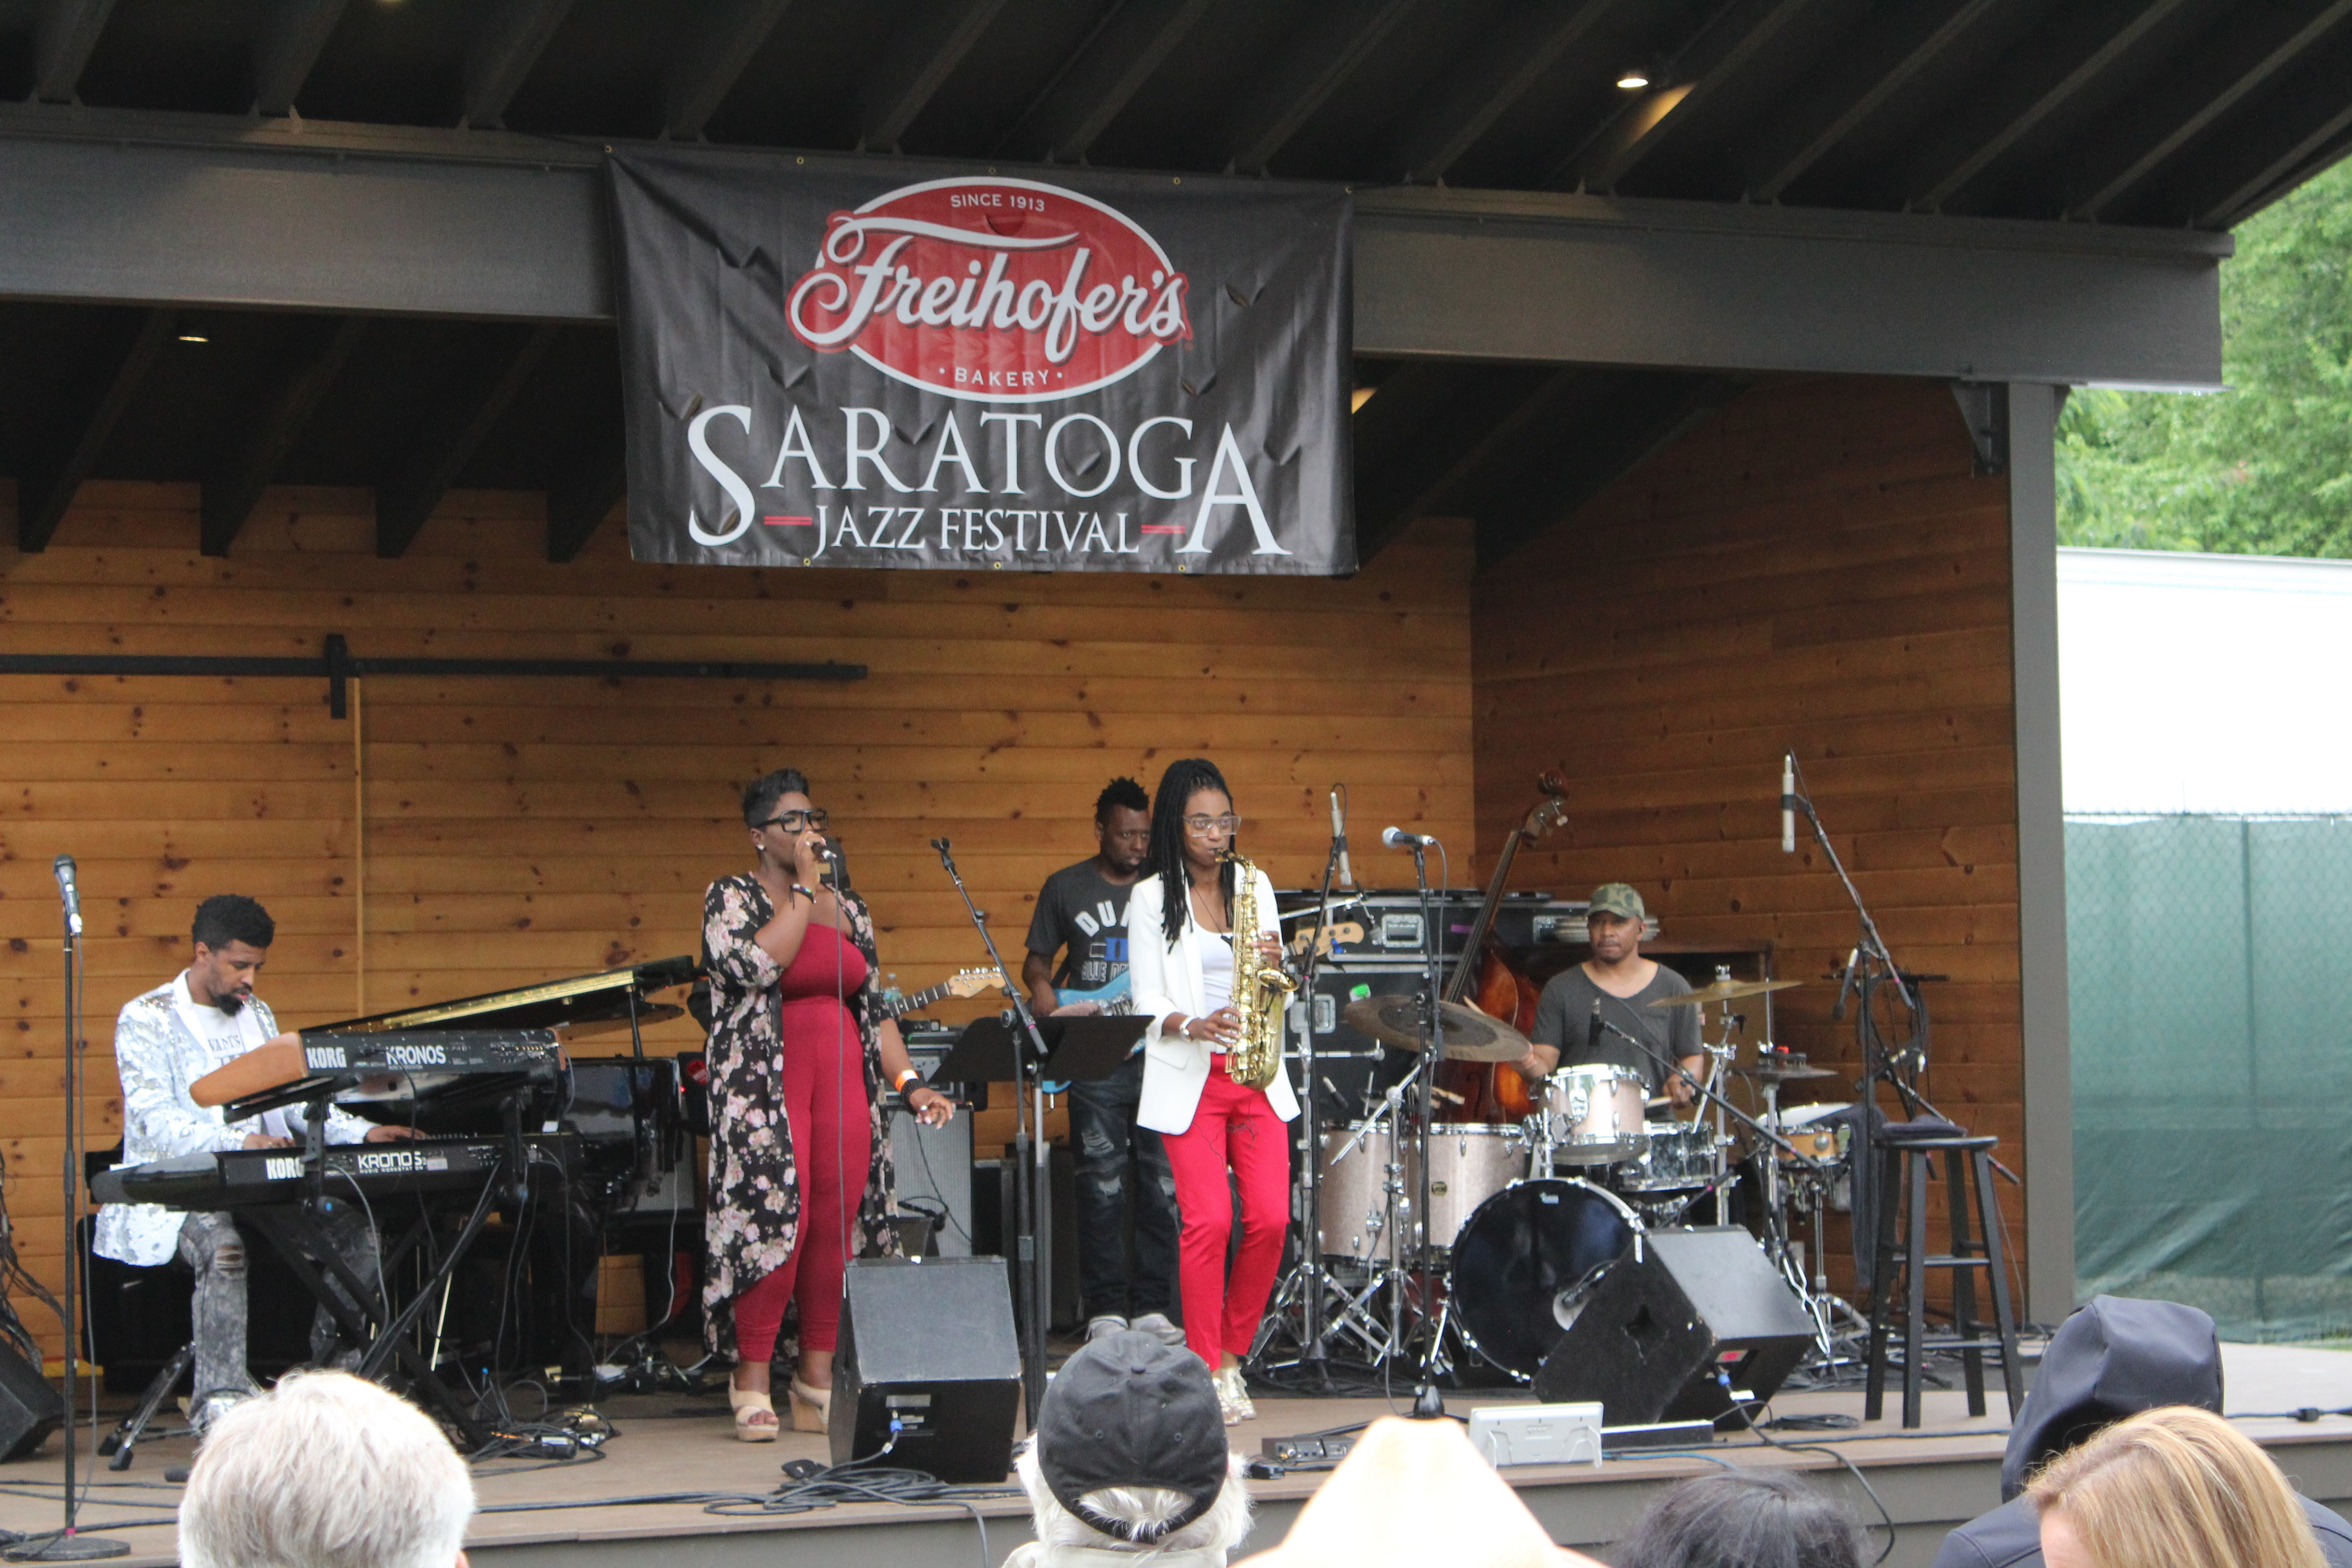 "<div class=""meta image-caption""><div class=""origin-logo origin-image wabc""><span>WABC</span></div><span class=""caption-text"">Lakecia Benjamin and SoulSquad perform on the Charles R. Wood Stage in between raindrops on Saturday. (Calvin B. De Mond)</span></div>"